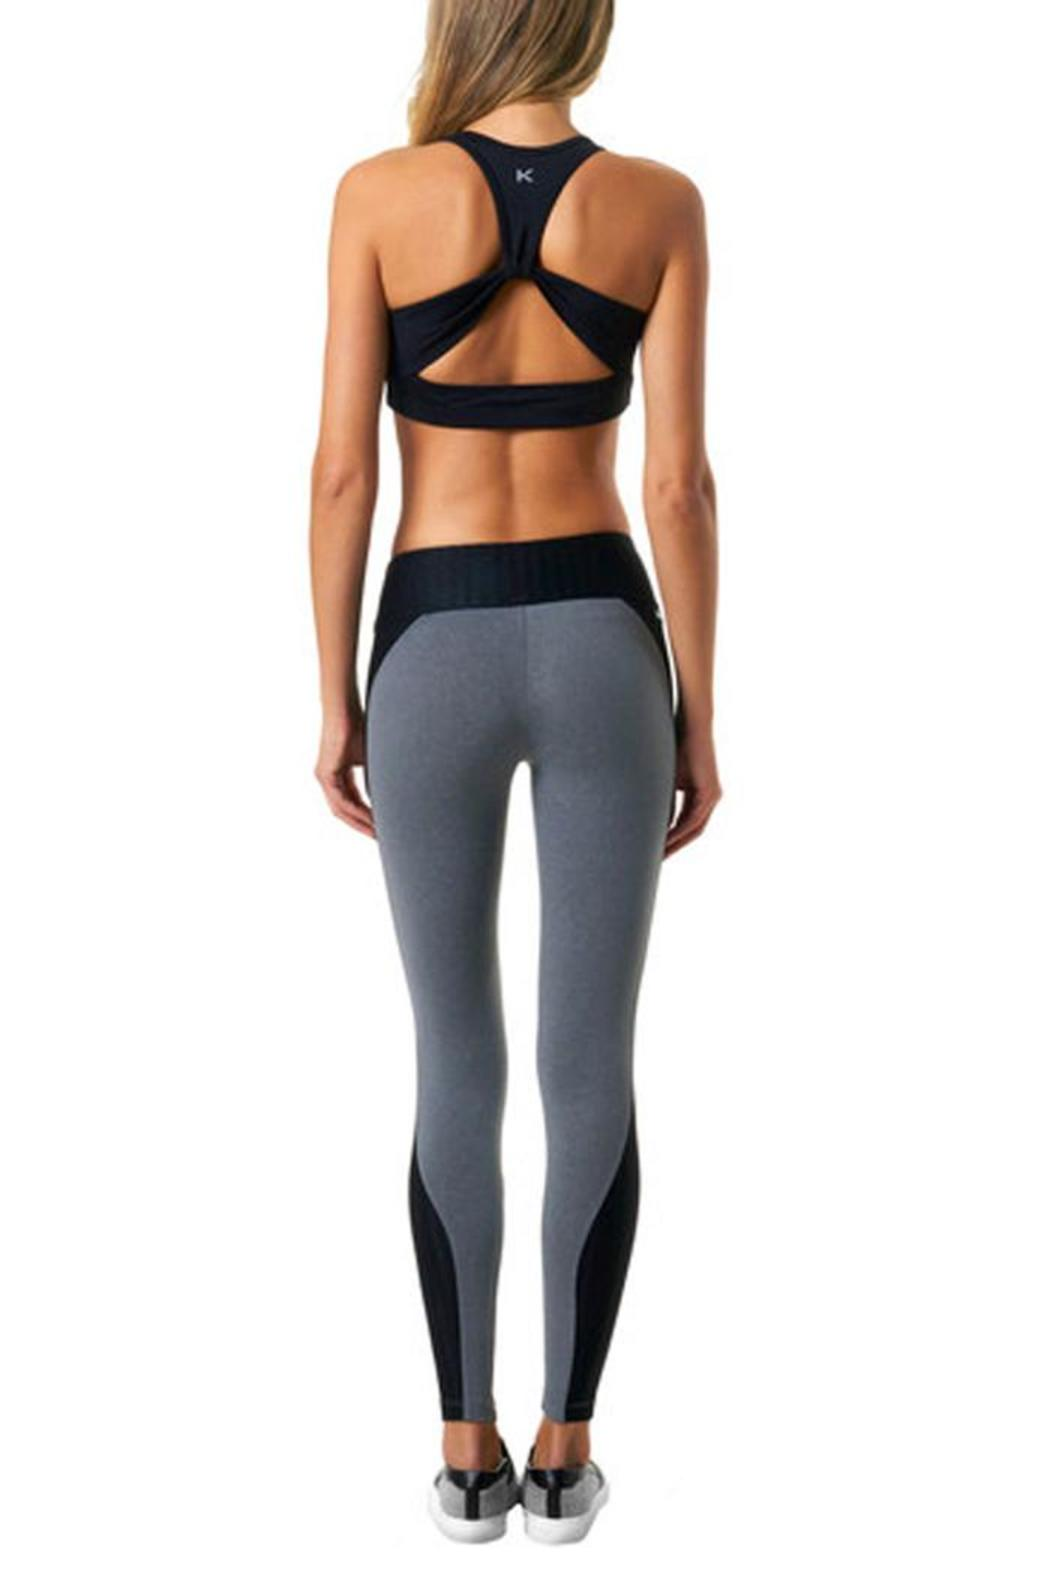 a83e4e7f0a Koral Activewear Compression Leggings from New York by Luna — Shoptiques